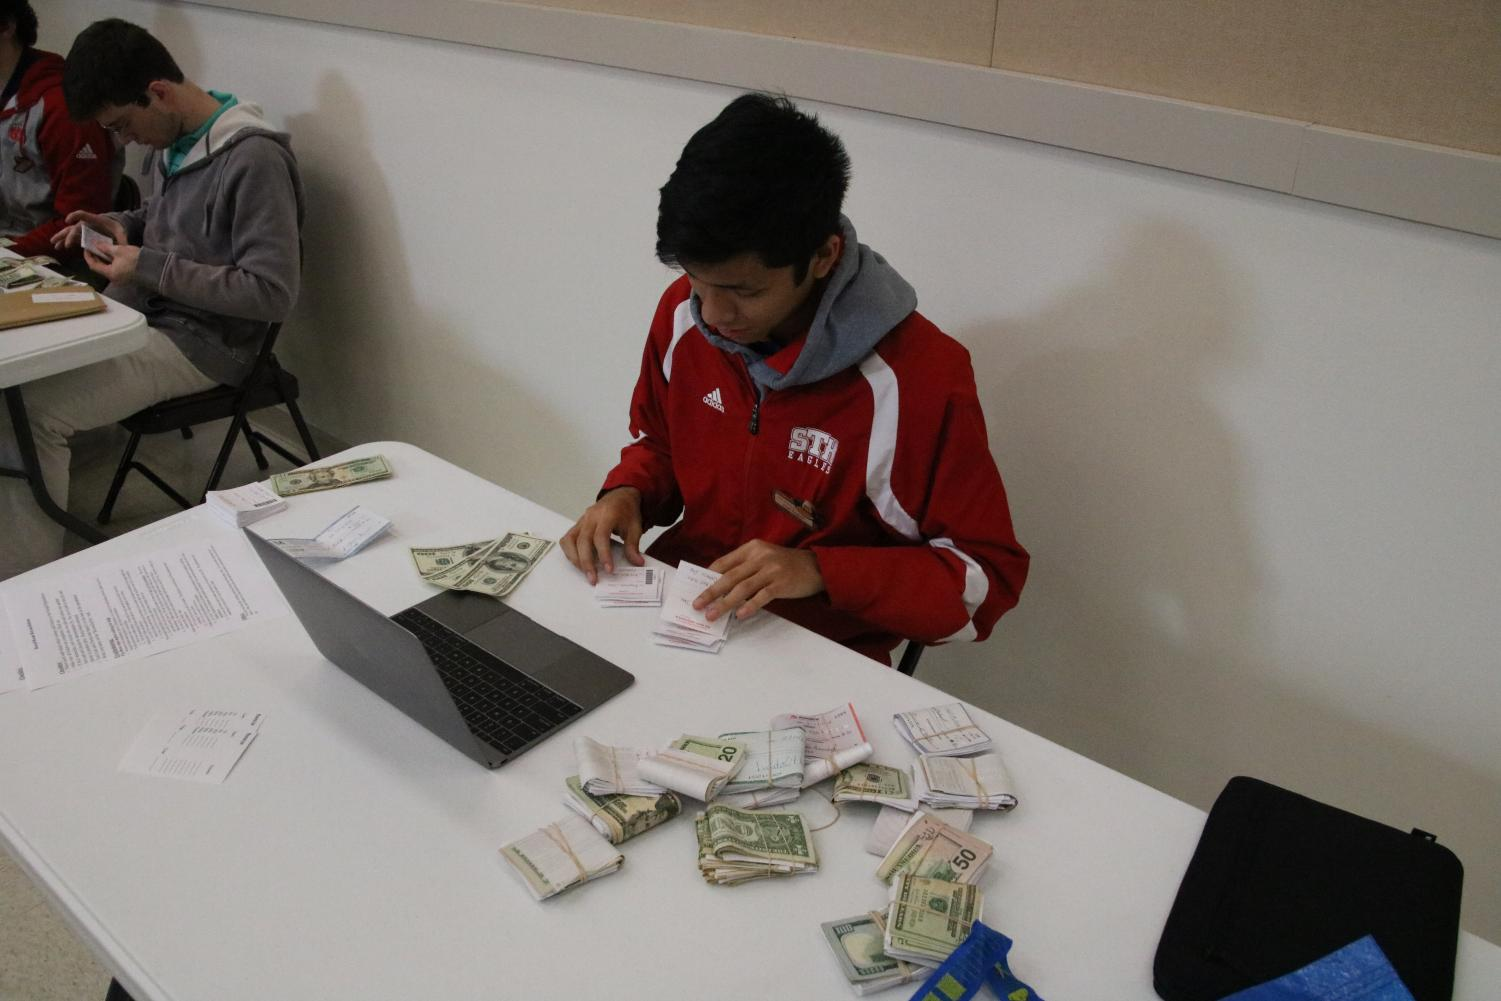 Round  Up board member Juan Vasquez '19 counts round up tickets and money after the turn in on February 14th. This was the final turn in to qualify for the 1st quota sellers holiday.